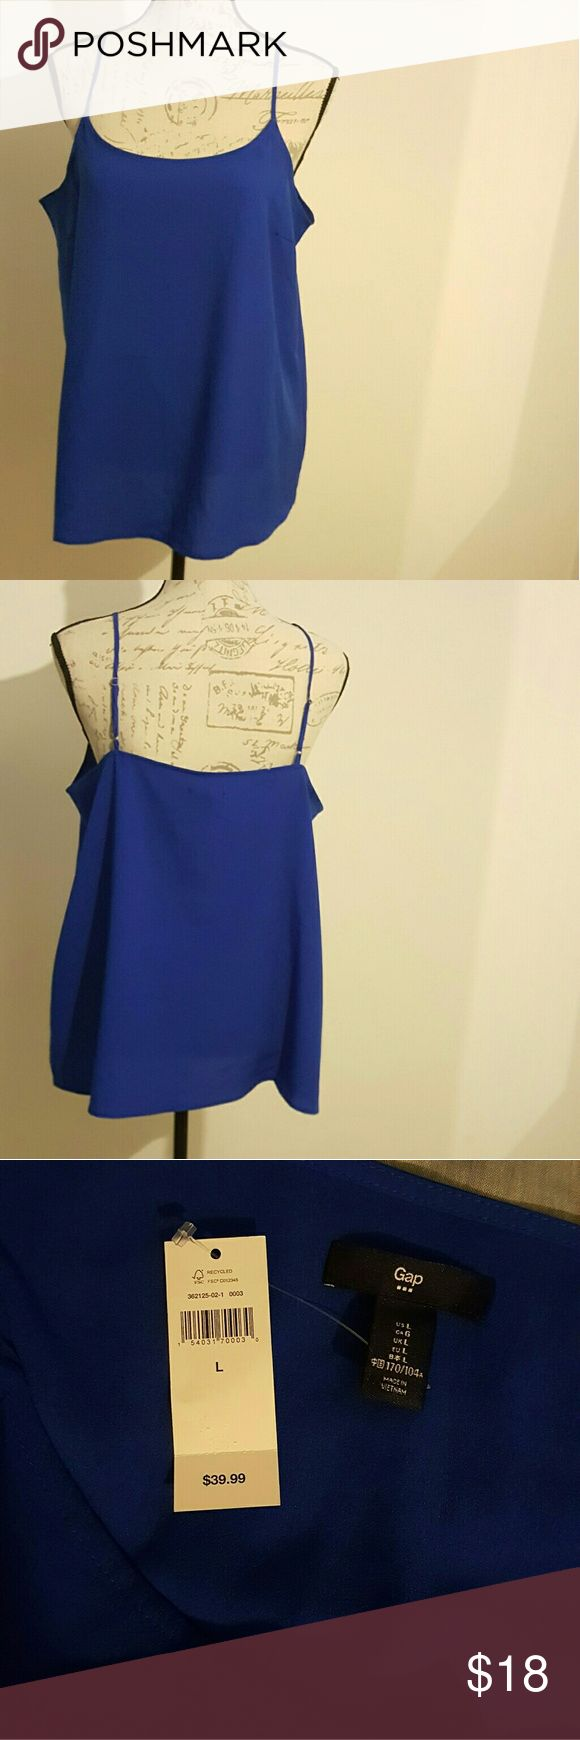 NWT Gap Woman's Sleeveless Flowy Camino Tank Top Active Blue Flowy tank top.   New with tags!! GAP Tops Tank Tops